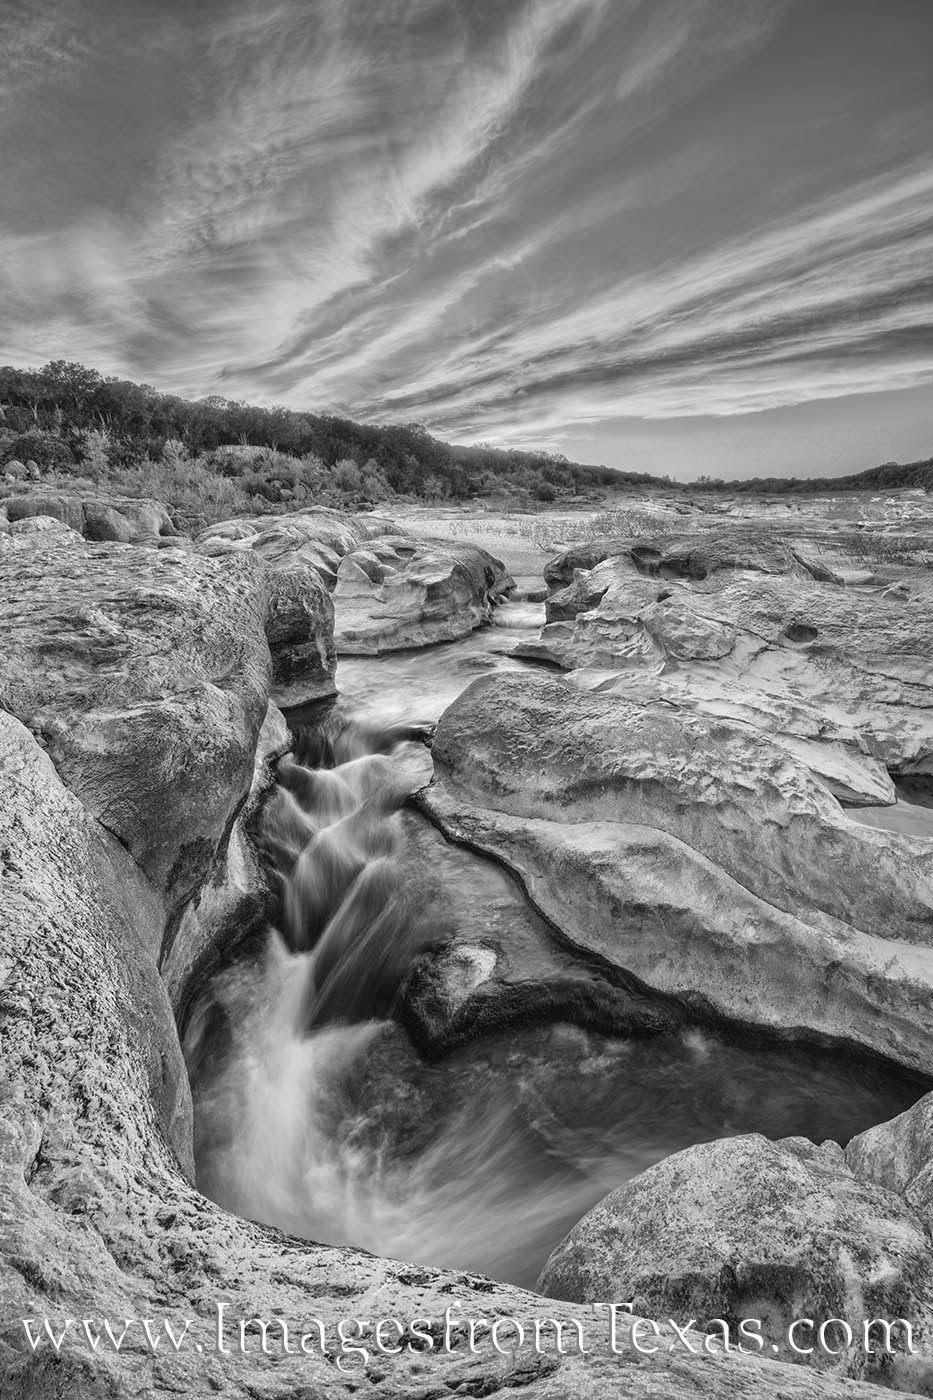 The cool waters of the Pedernales River flows through a small limestone canyon beneath a evening Spring sky in this black and...